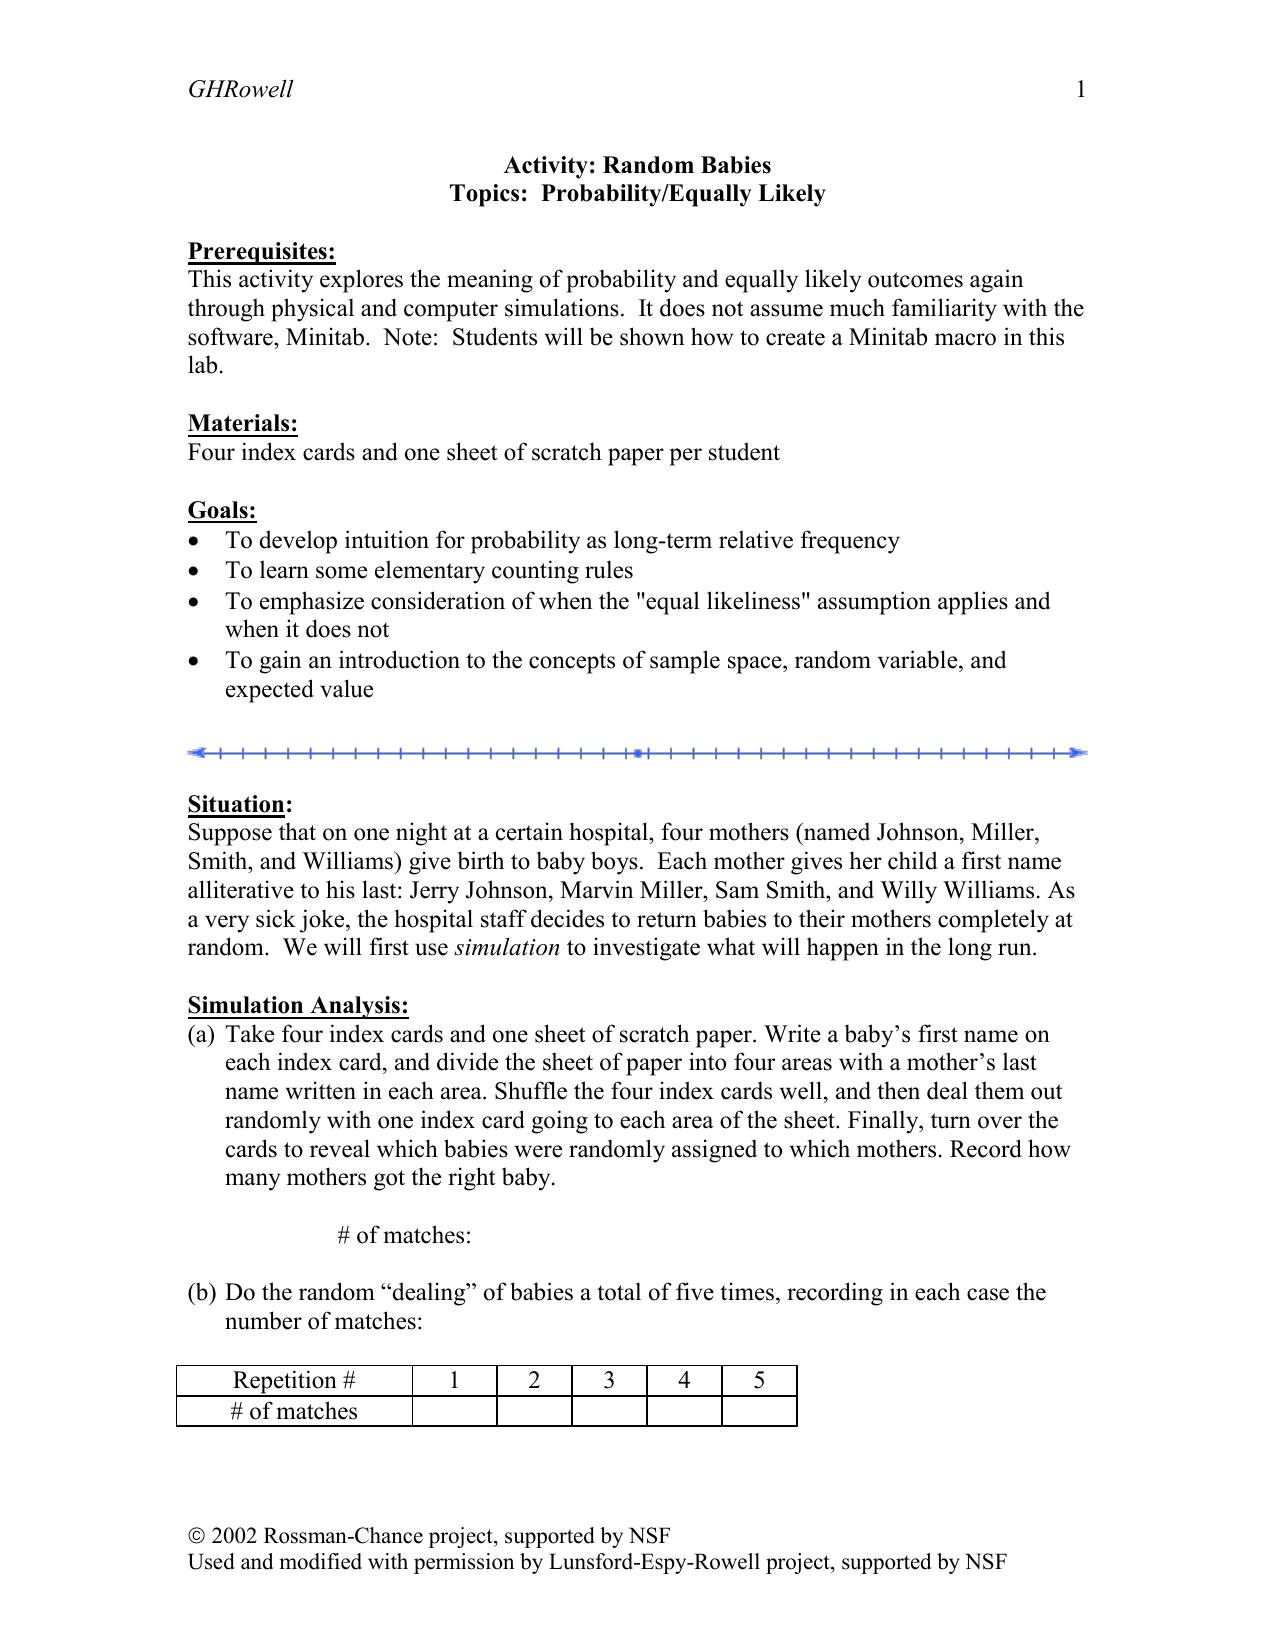 GHRowell This activity explores the meaning of probability and ...